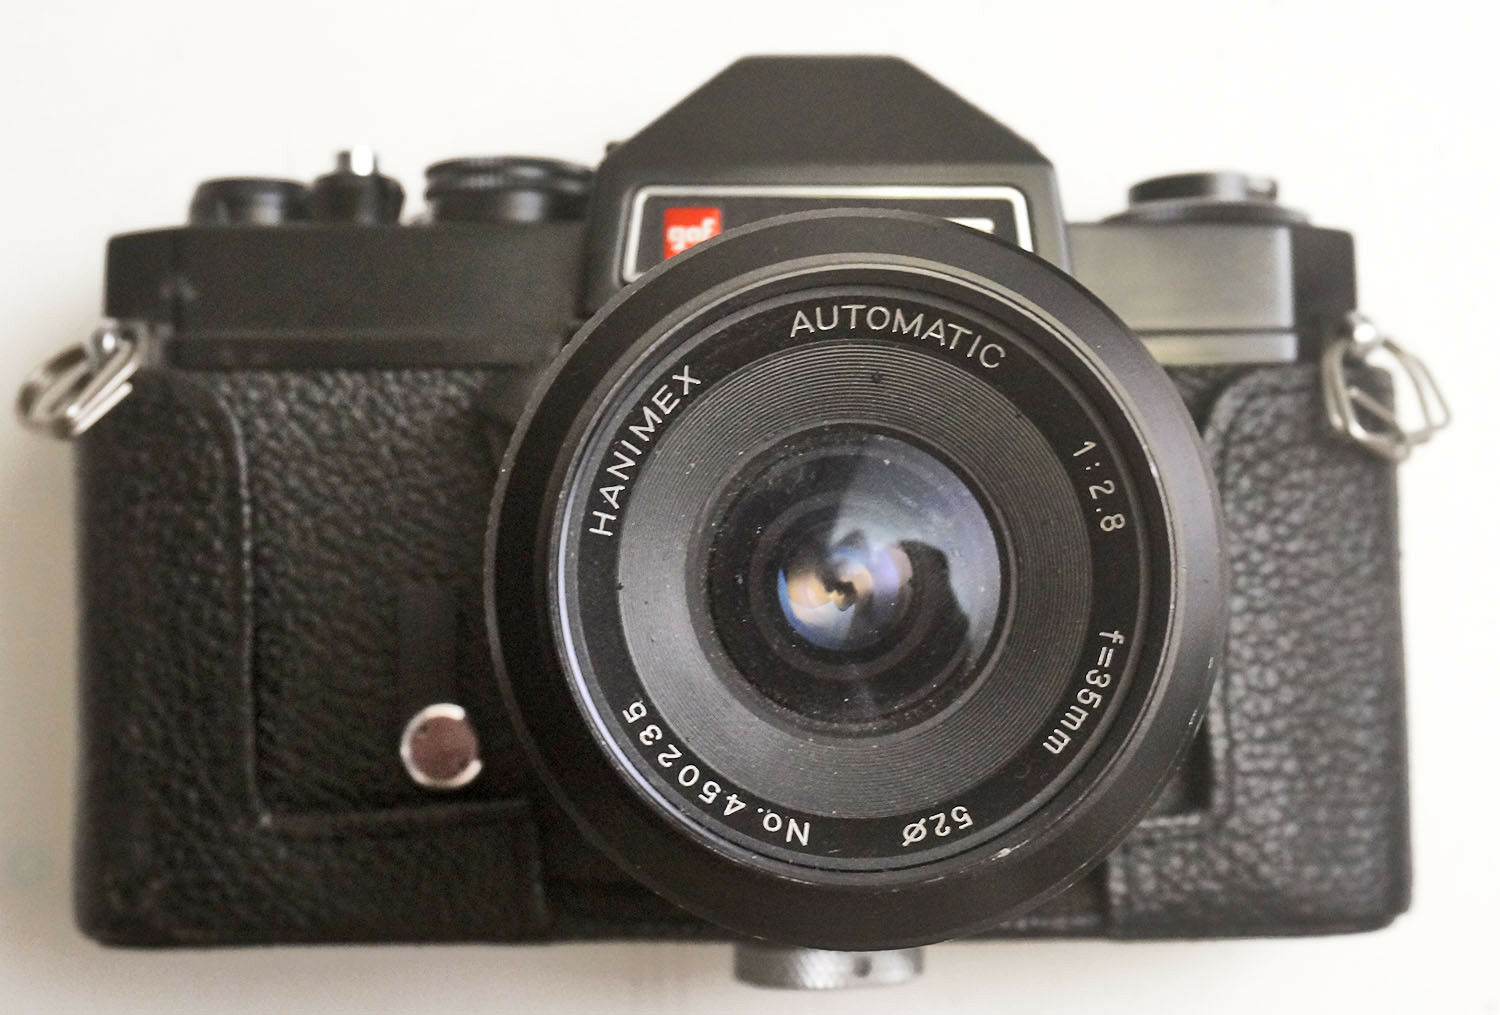 GAF L-CS 35mm SLR Camera With Hanimex 2.8/35 Lens TESTED WORKING - $95.00